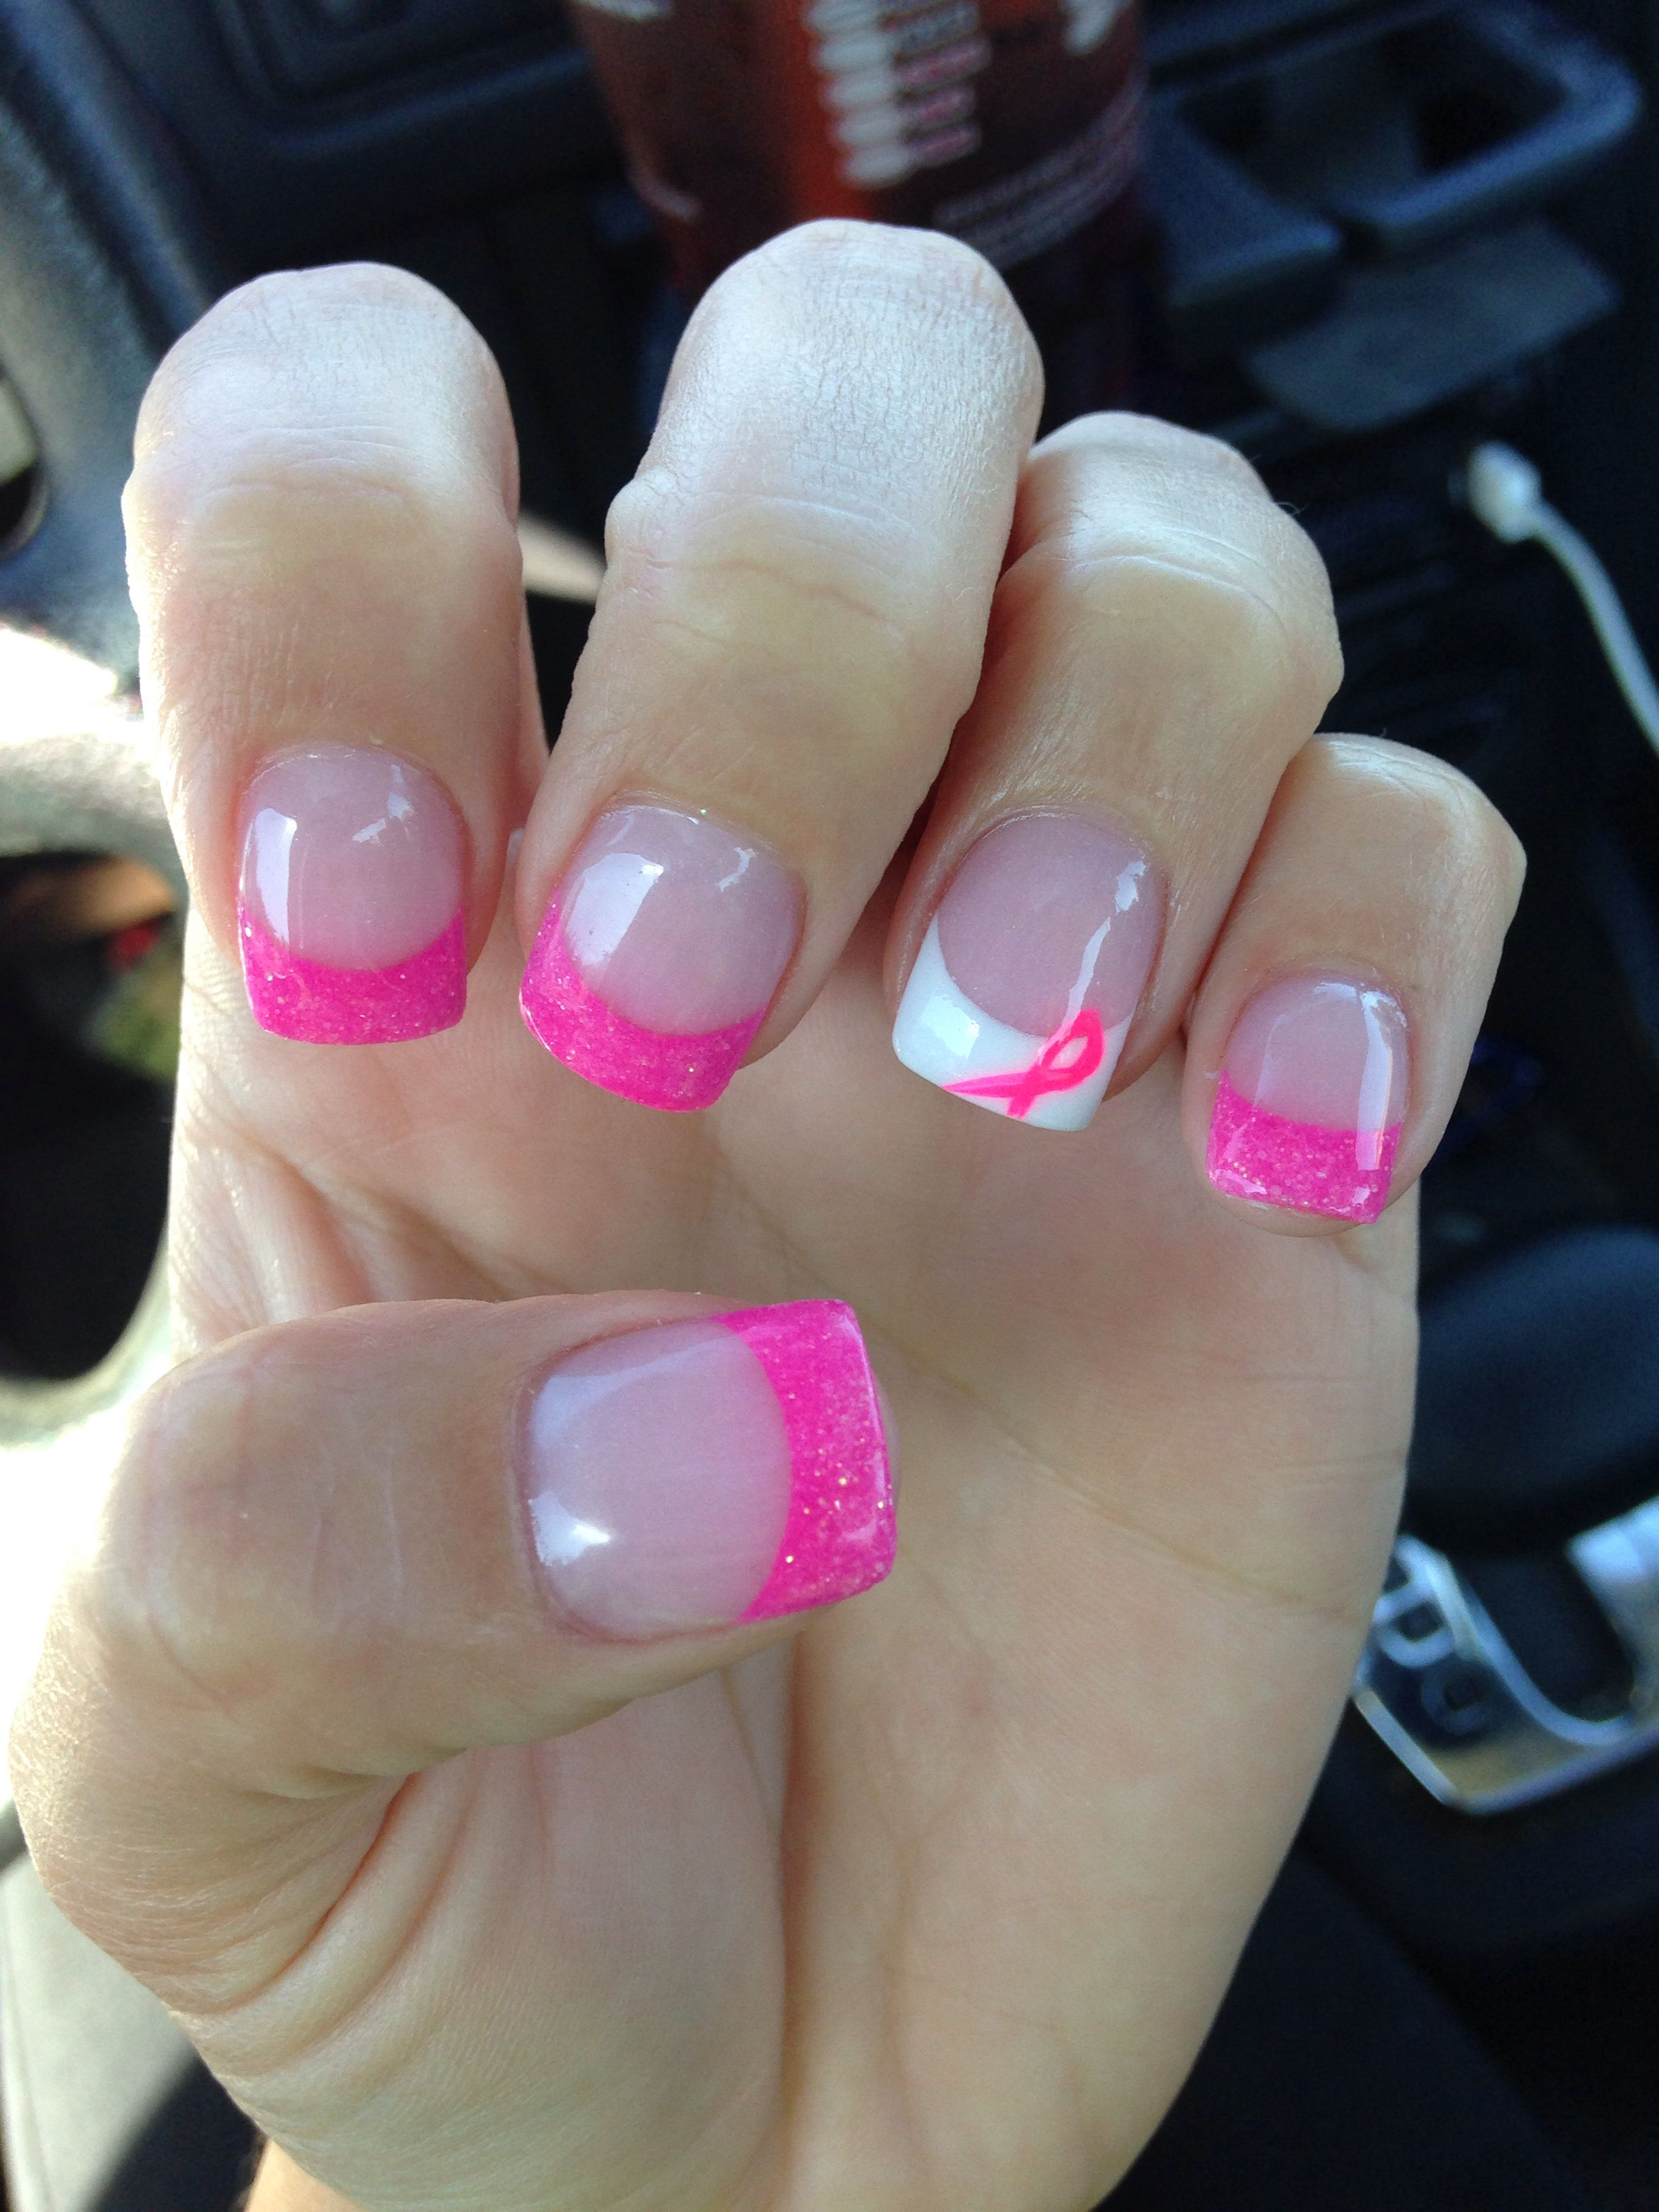 October Breast Cancer Awareness Love My Nails Fav Nail Tech Is